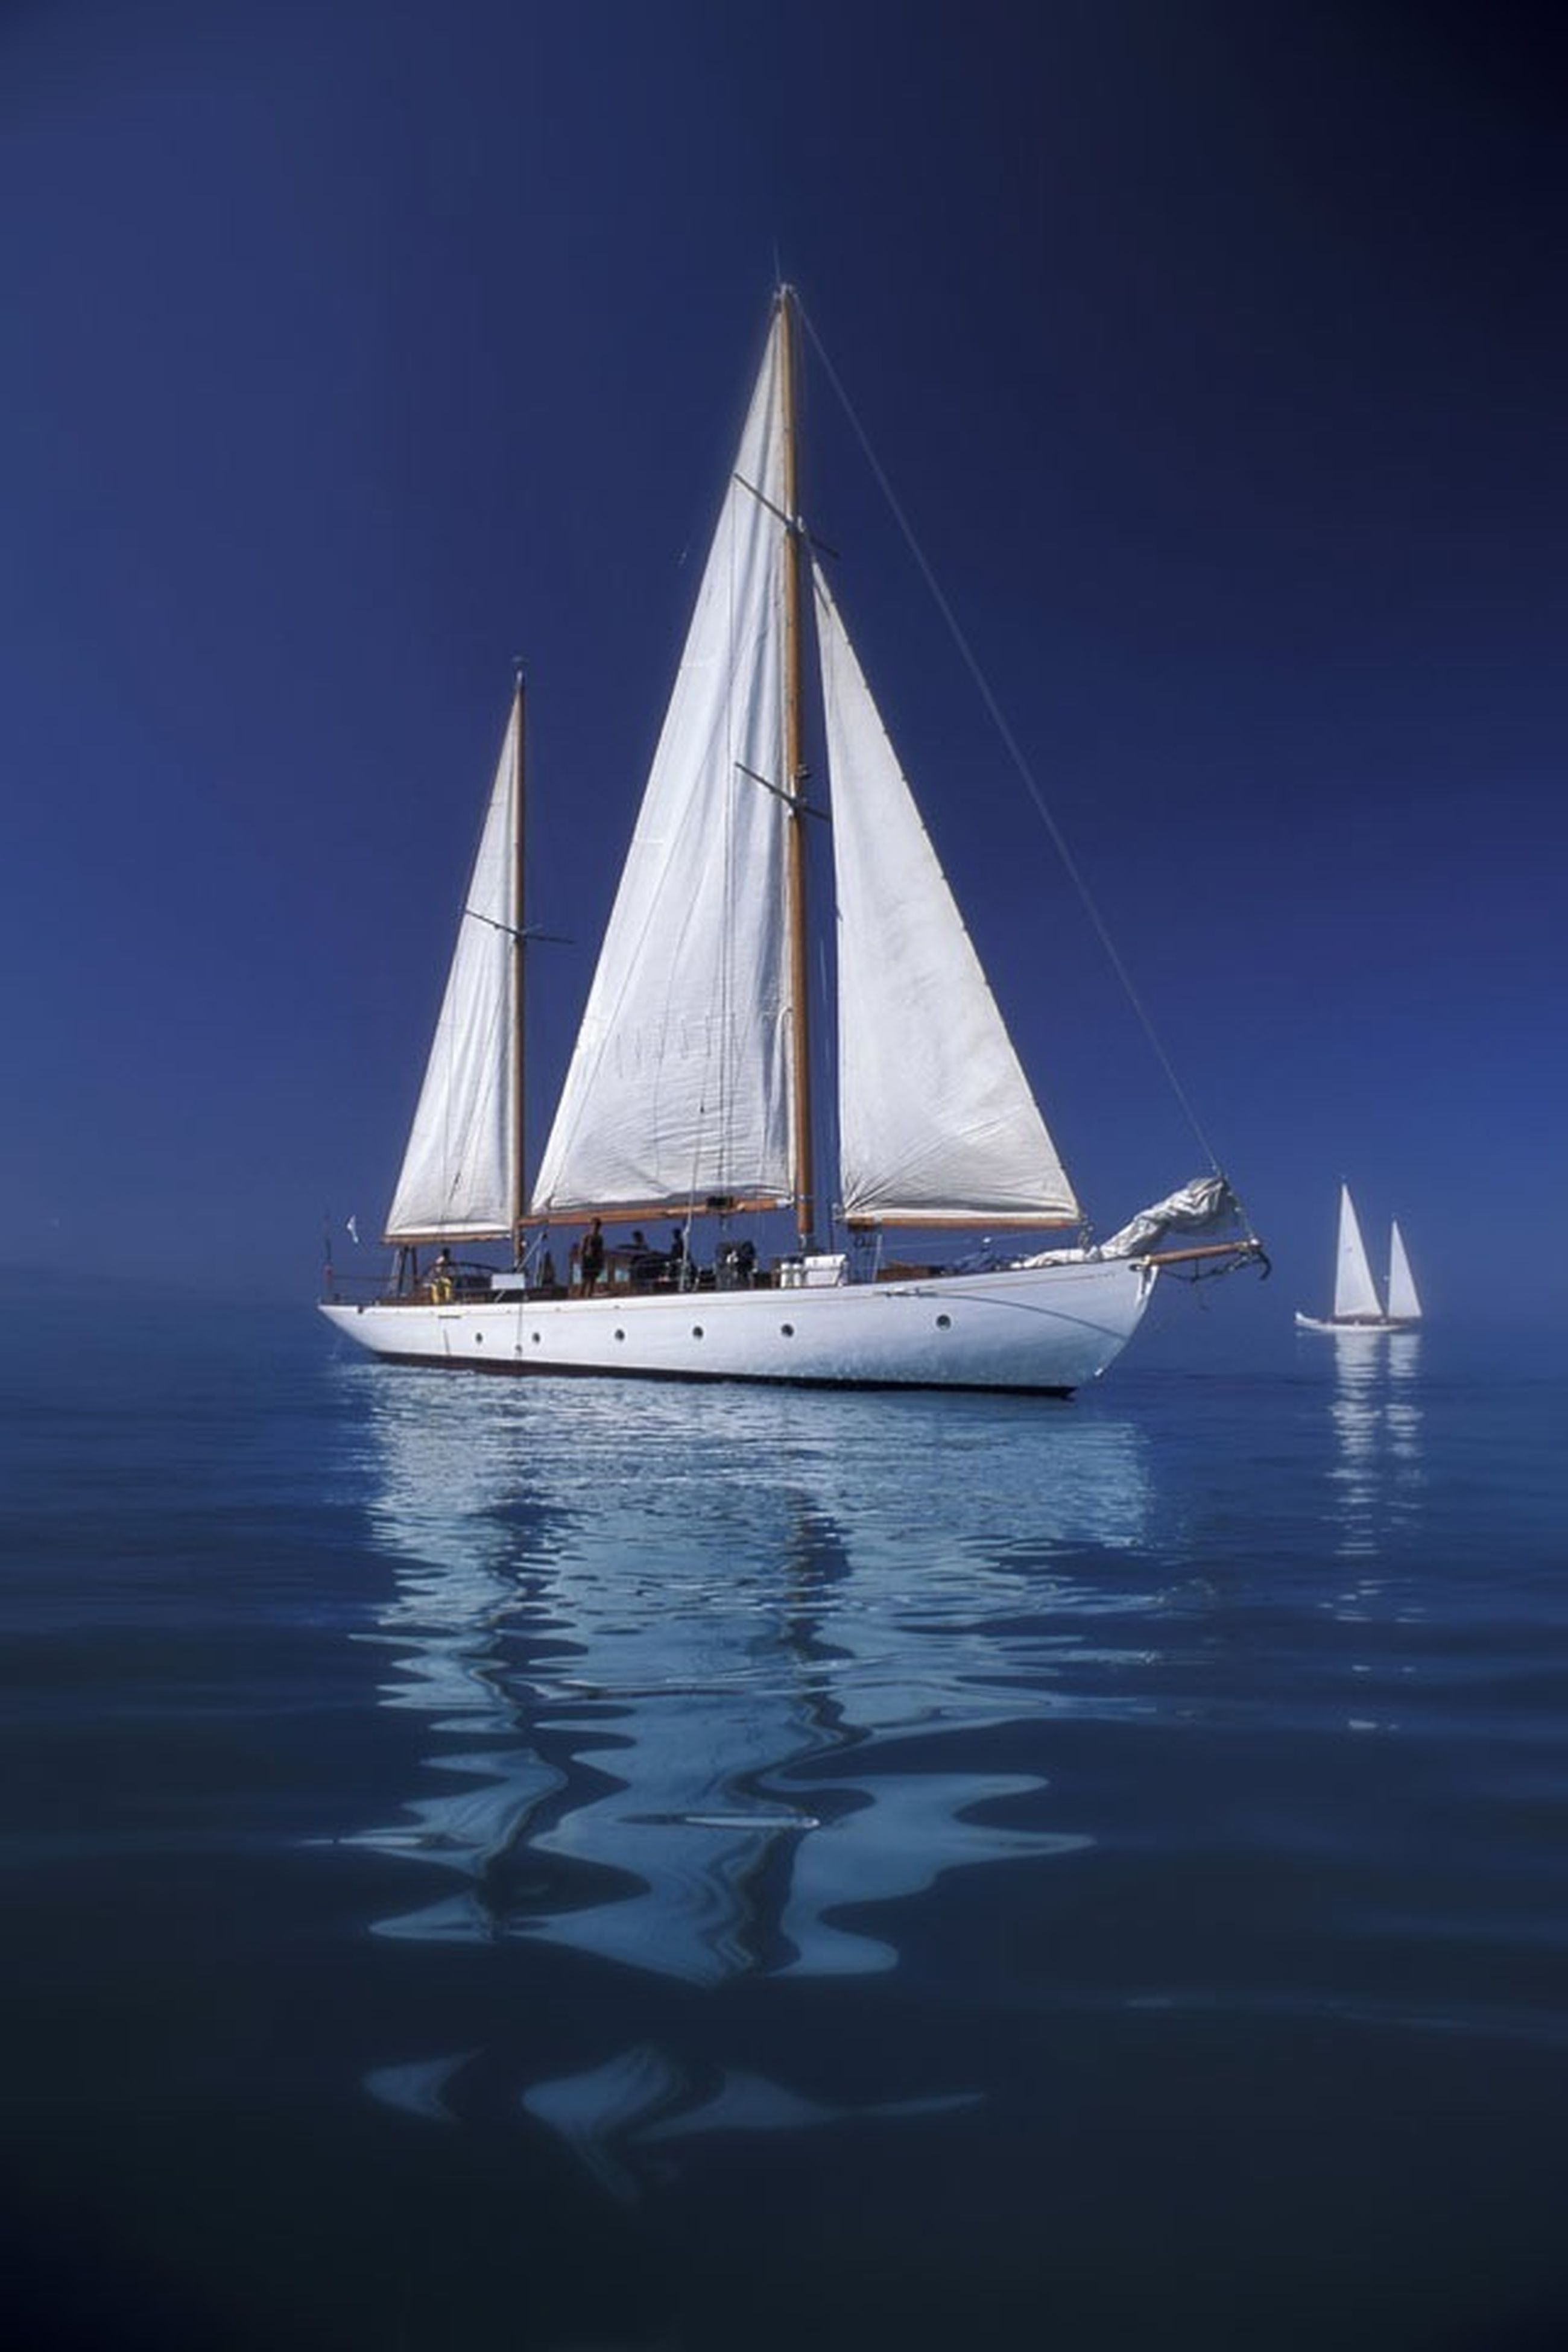 nautical vessel, boat, water, transportation, mode of transport, sea, waterfront, moored, sailboat, blue, clear sky, sailing, horizon over water, sky, travel, nature, tranquility, mast, reflection, tranquil scene